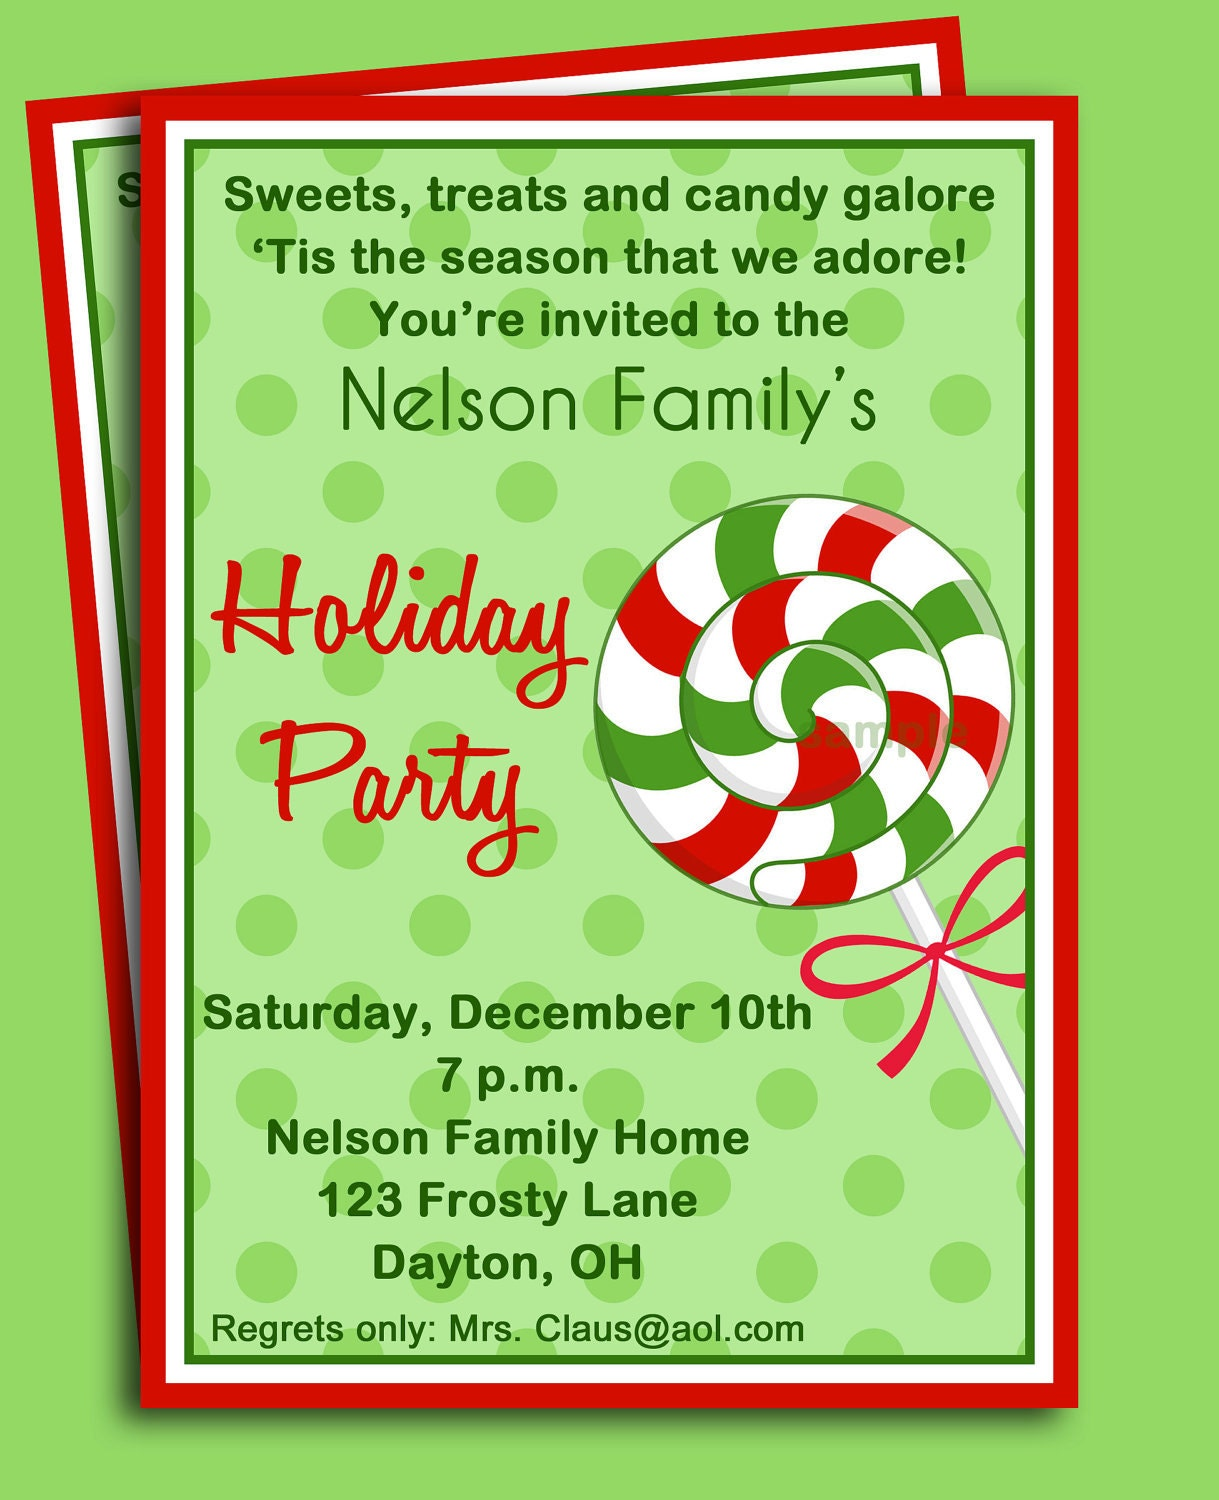 Christmas Party Invitation Quotes: Christmas Candy Invitation Printable Sweet Treat Christmas